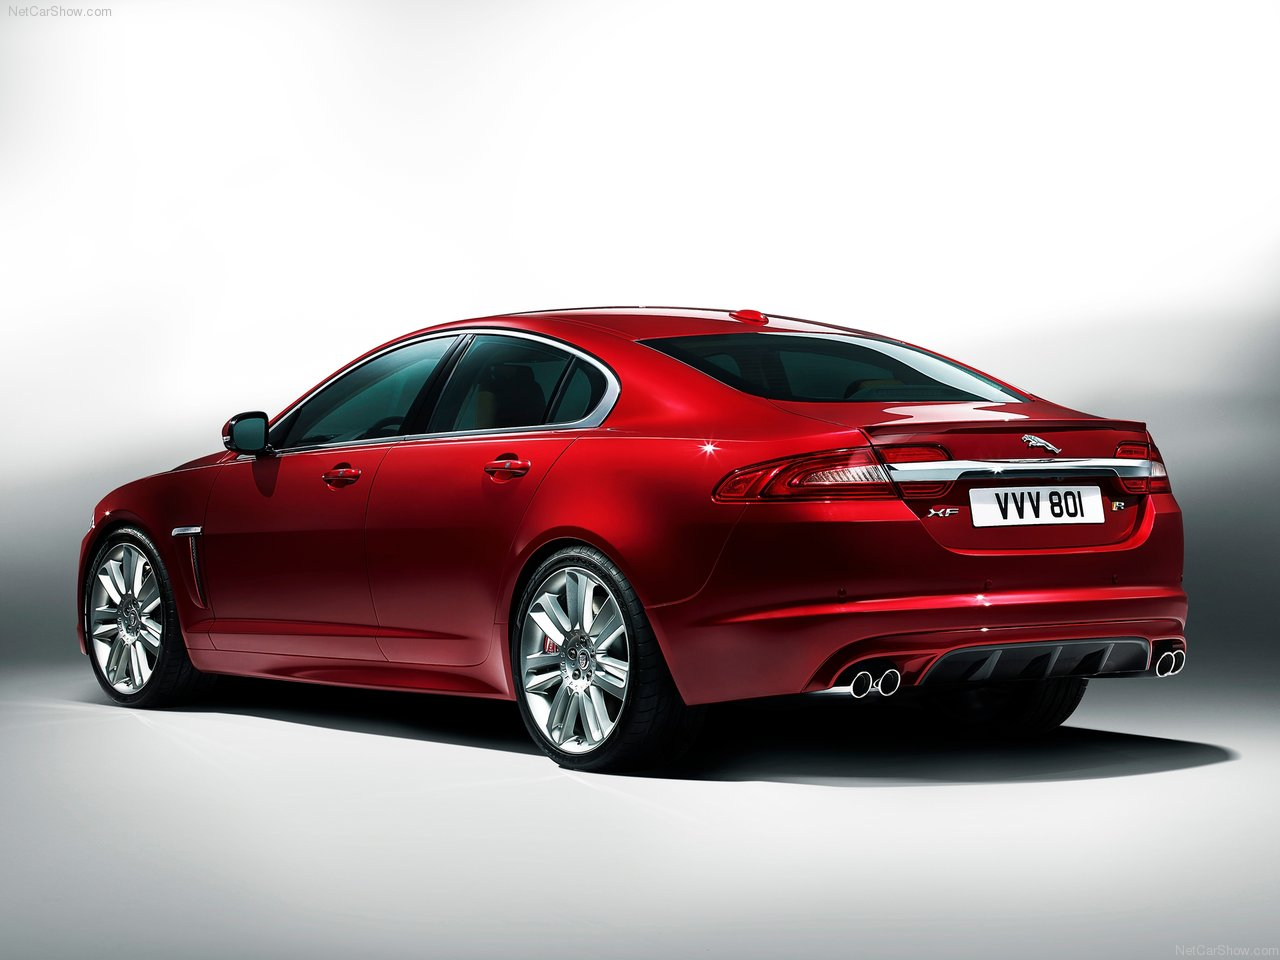 https://2.bp.blogspot.com/-ODzsWzDKy8M/TbADuFPf0FI/AAAAAAAAC70/2At4stBNH1w/s1600/Jaguar-XFR_2012_1280x960_wallpaper_07.jpg